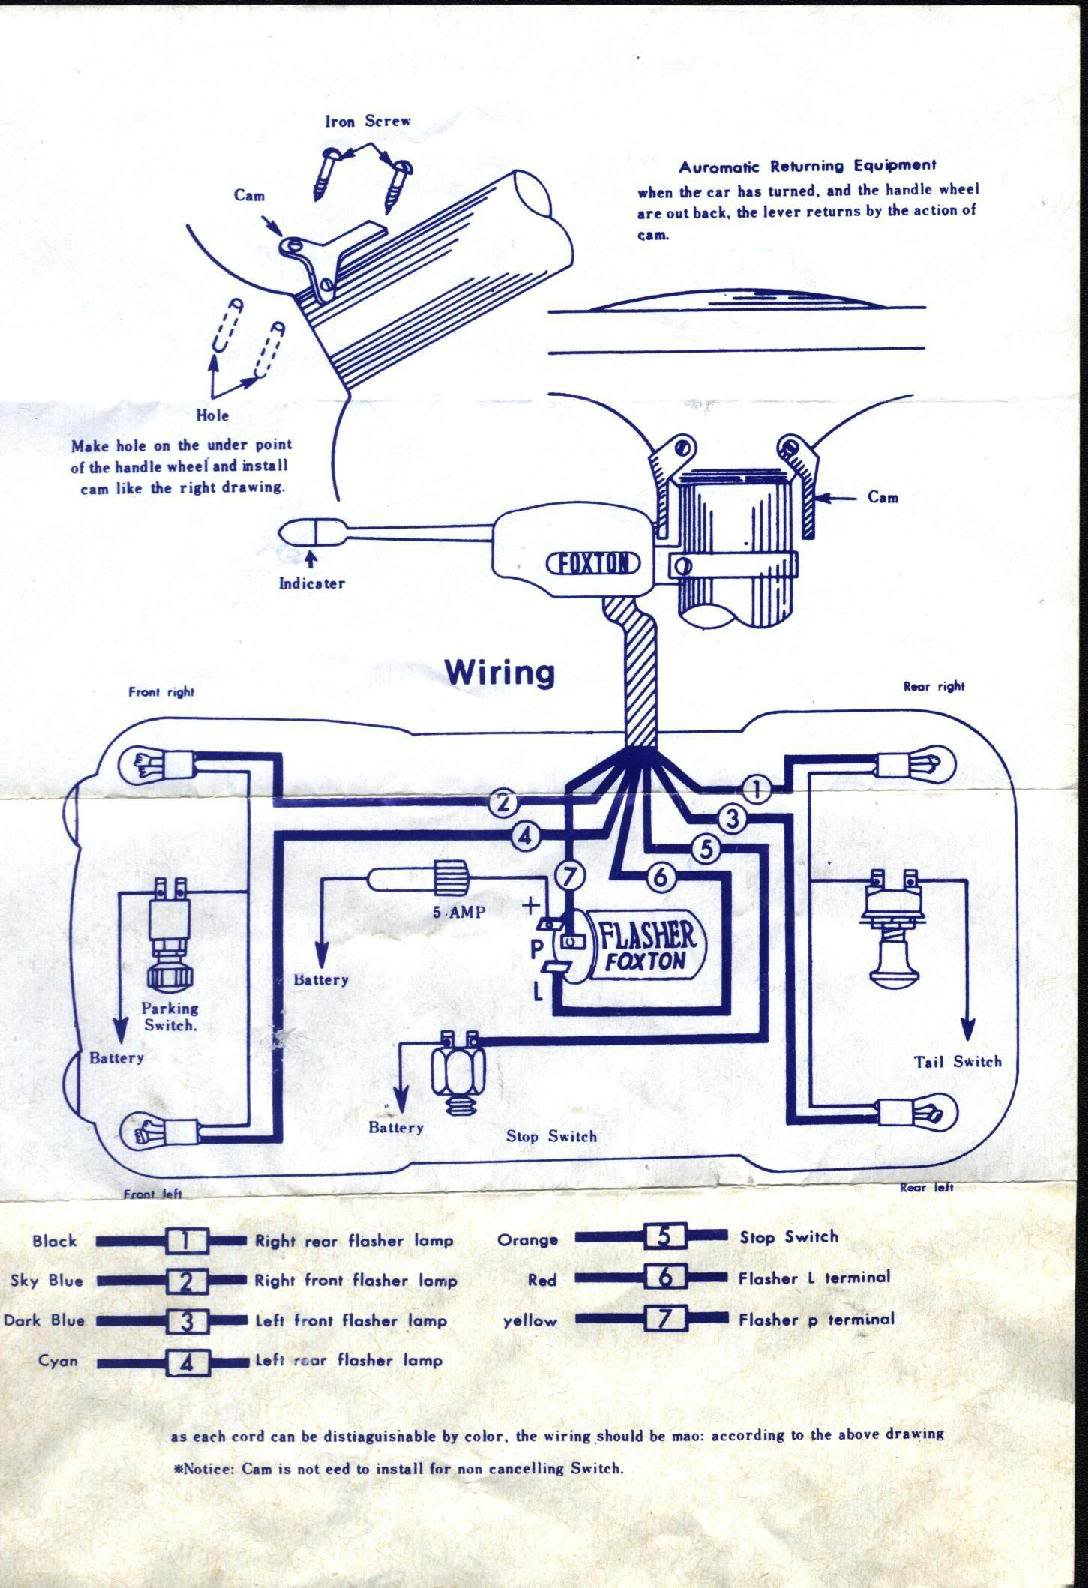 yet another turn signal wiring question the h a m b Chevy Truck Wiring Diagram at readyjetset.co